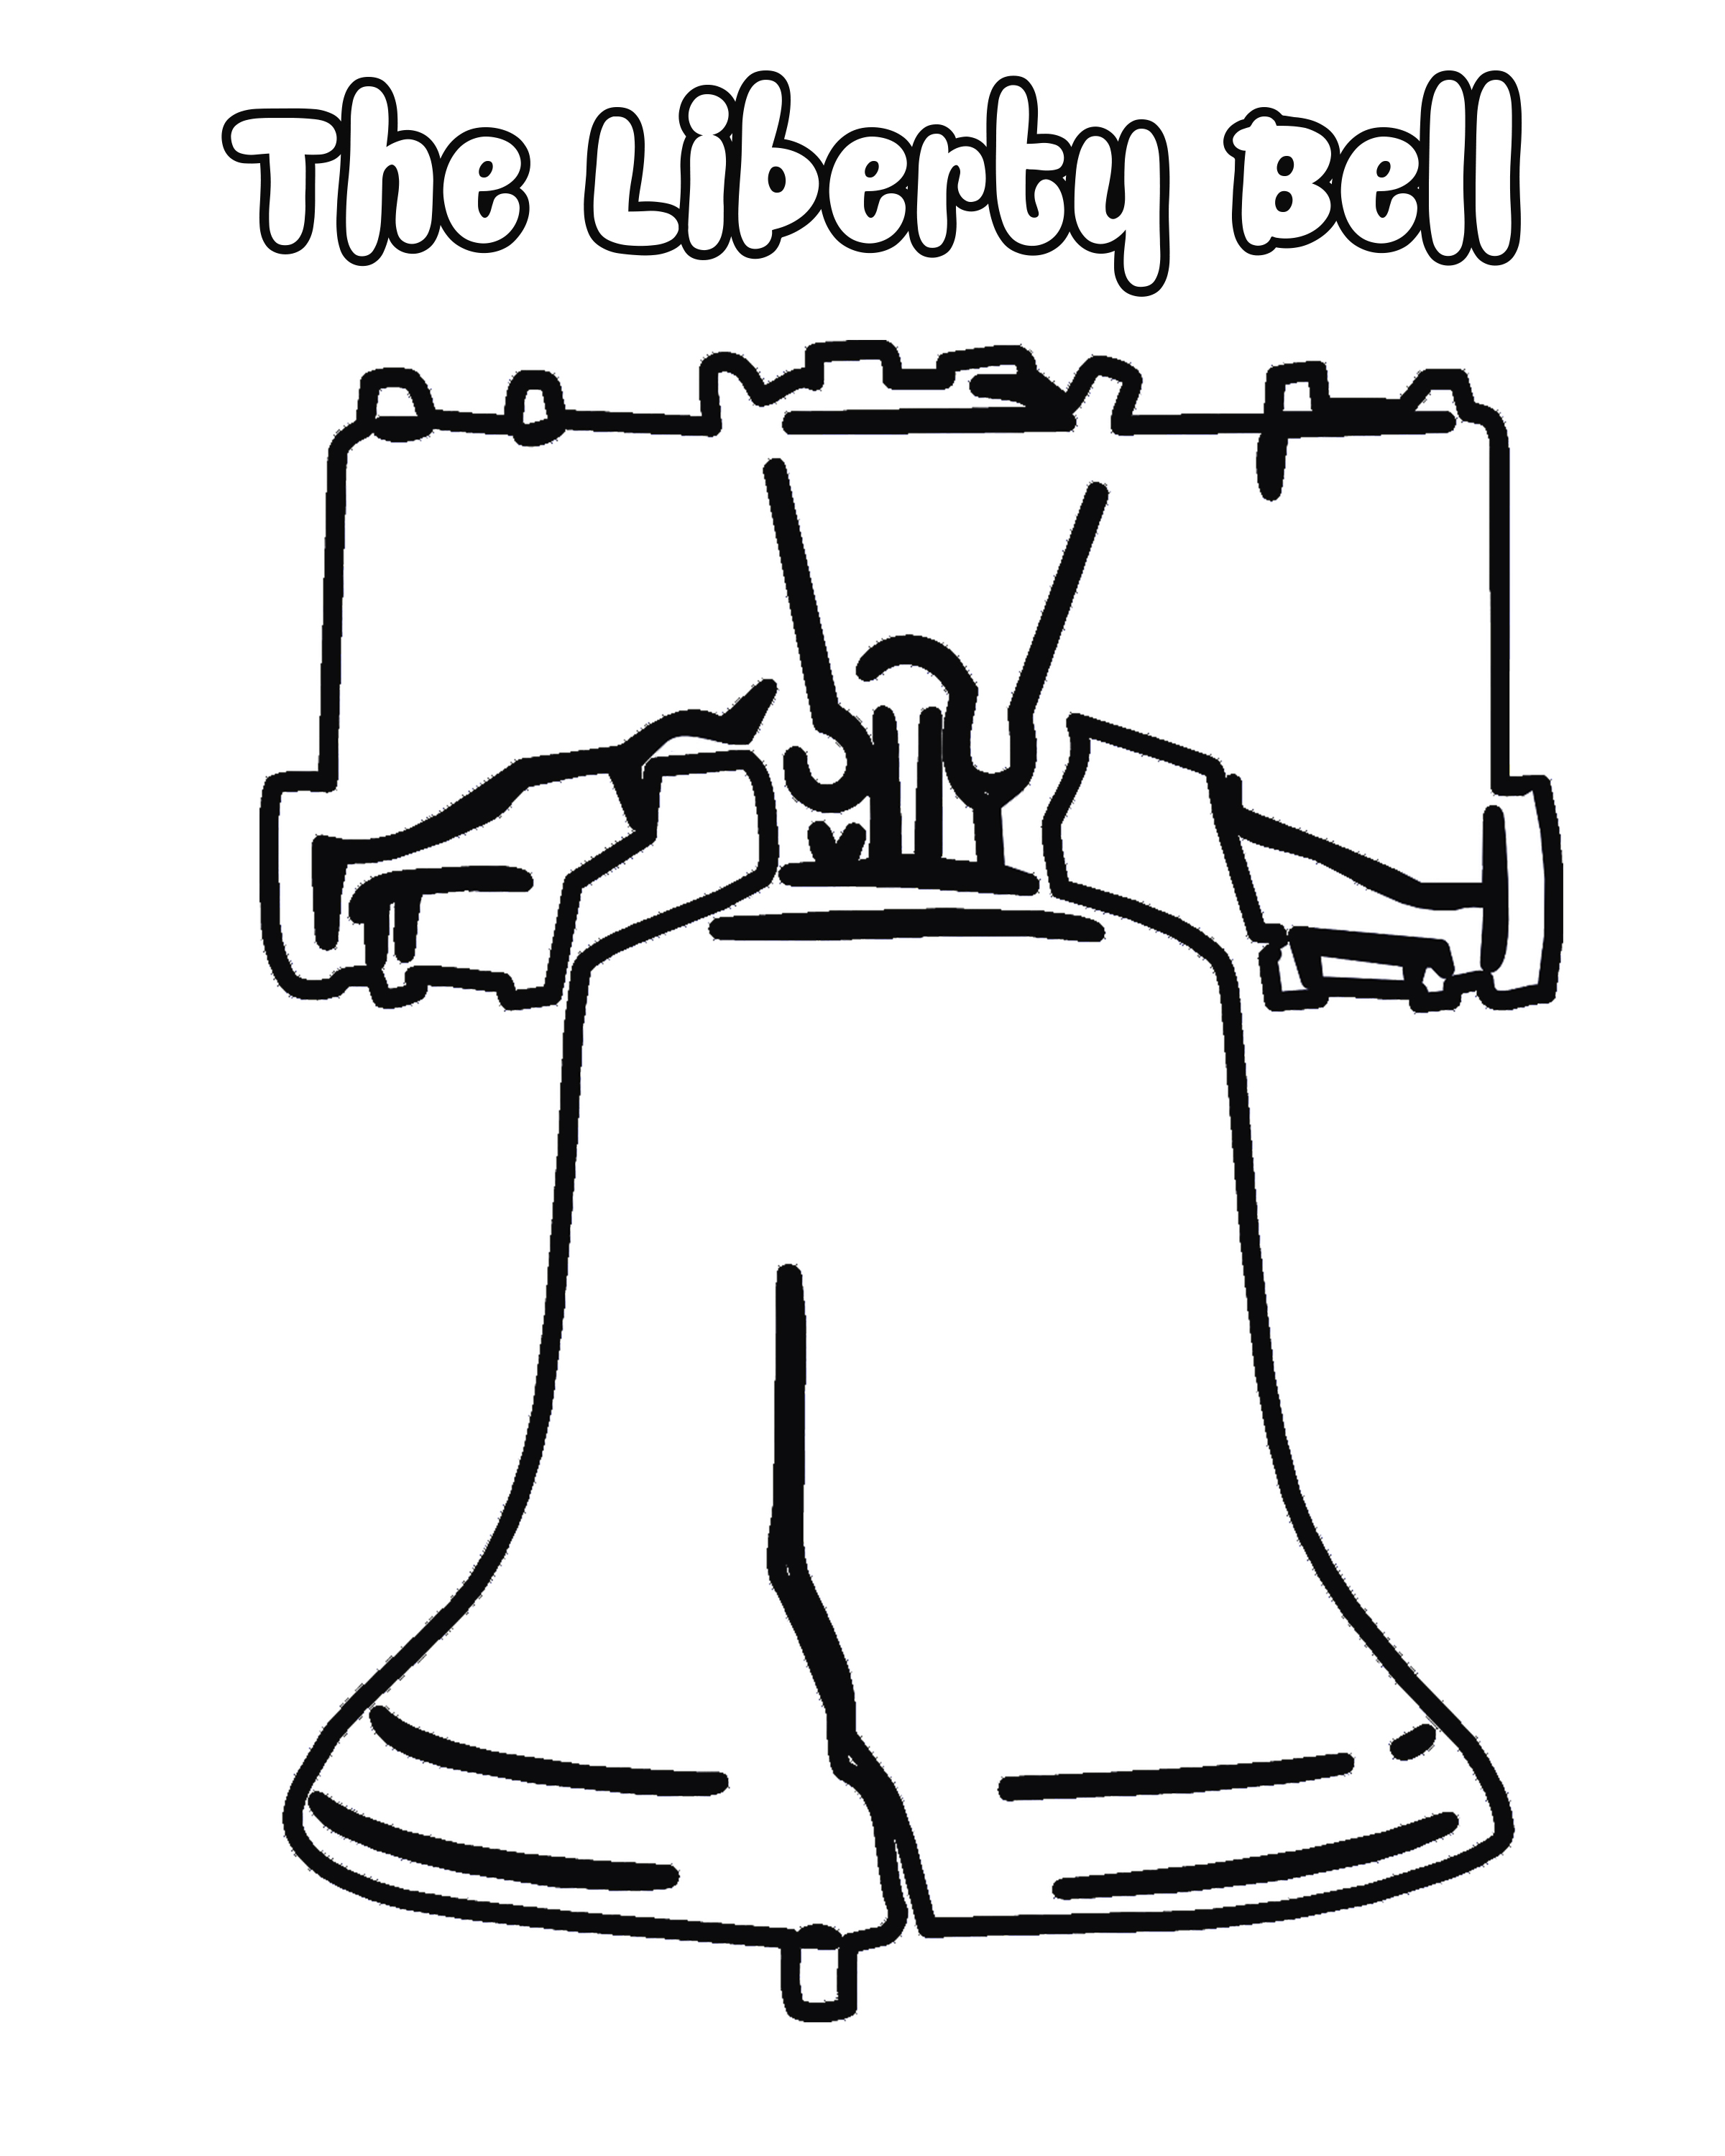 coloring pages liberty - photo#38